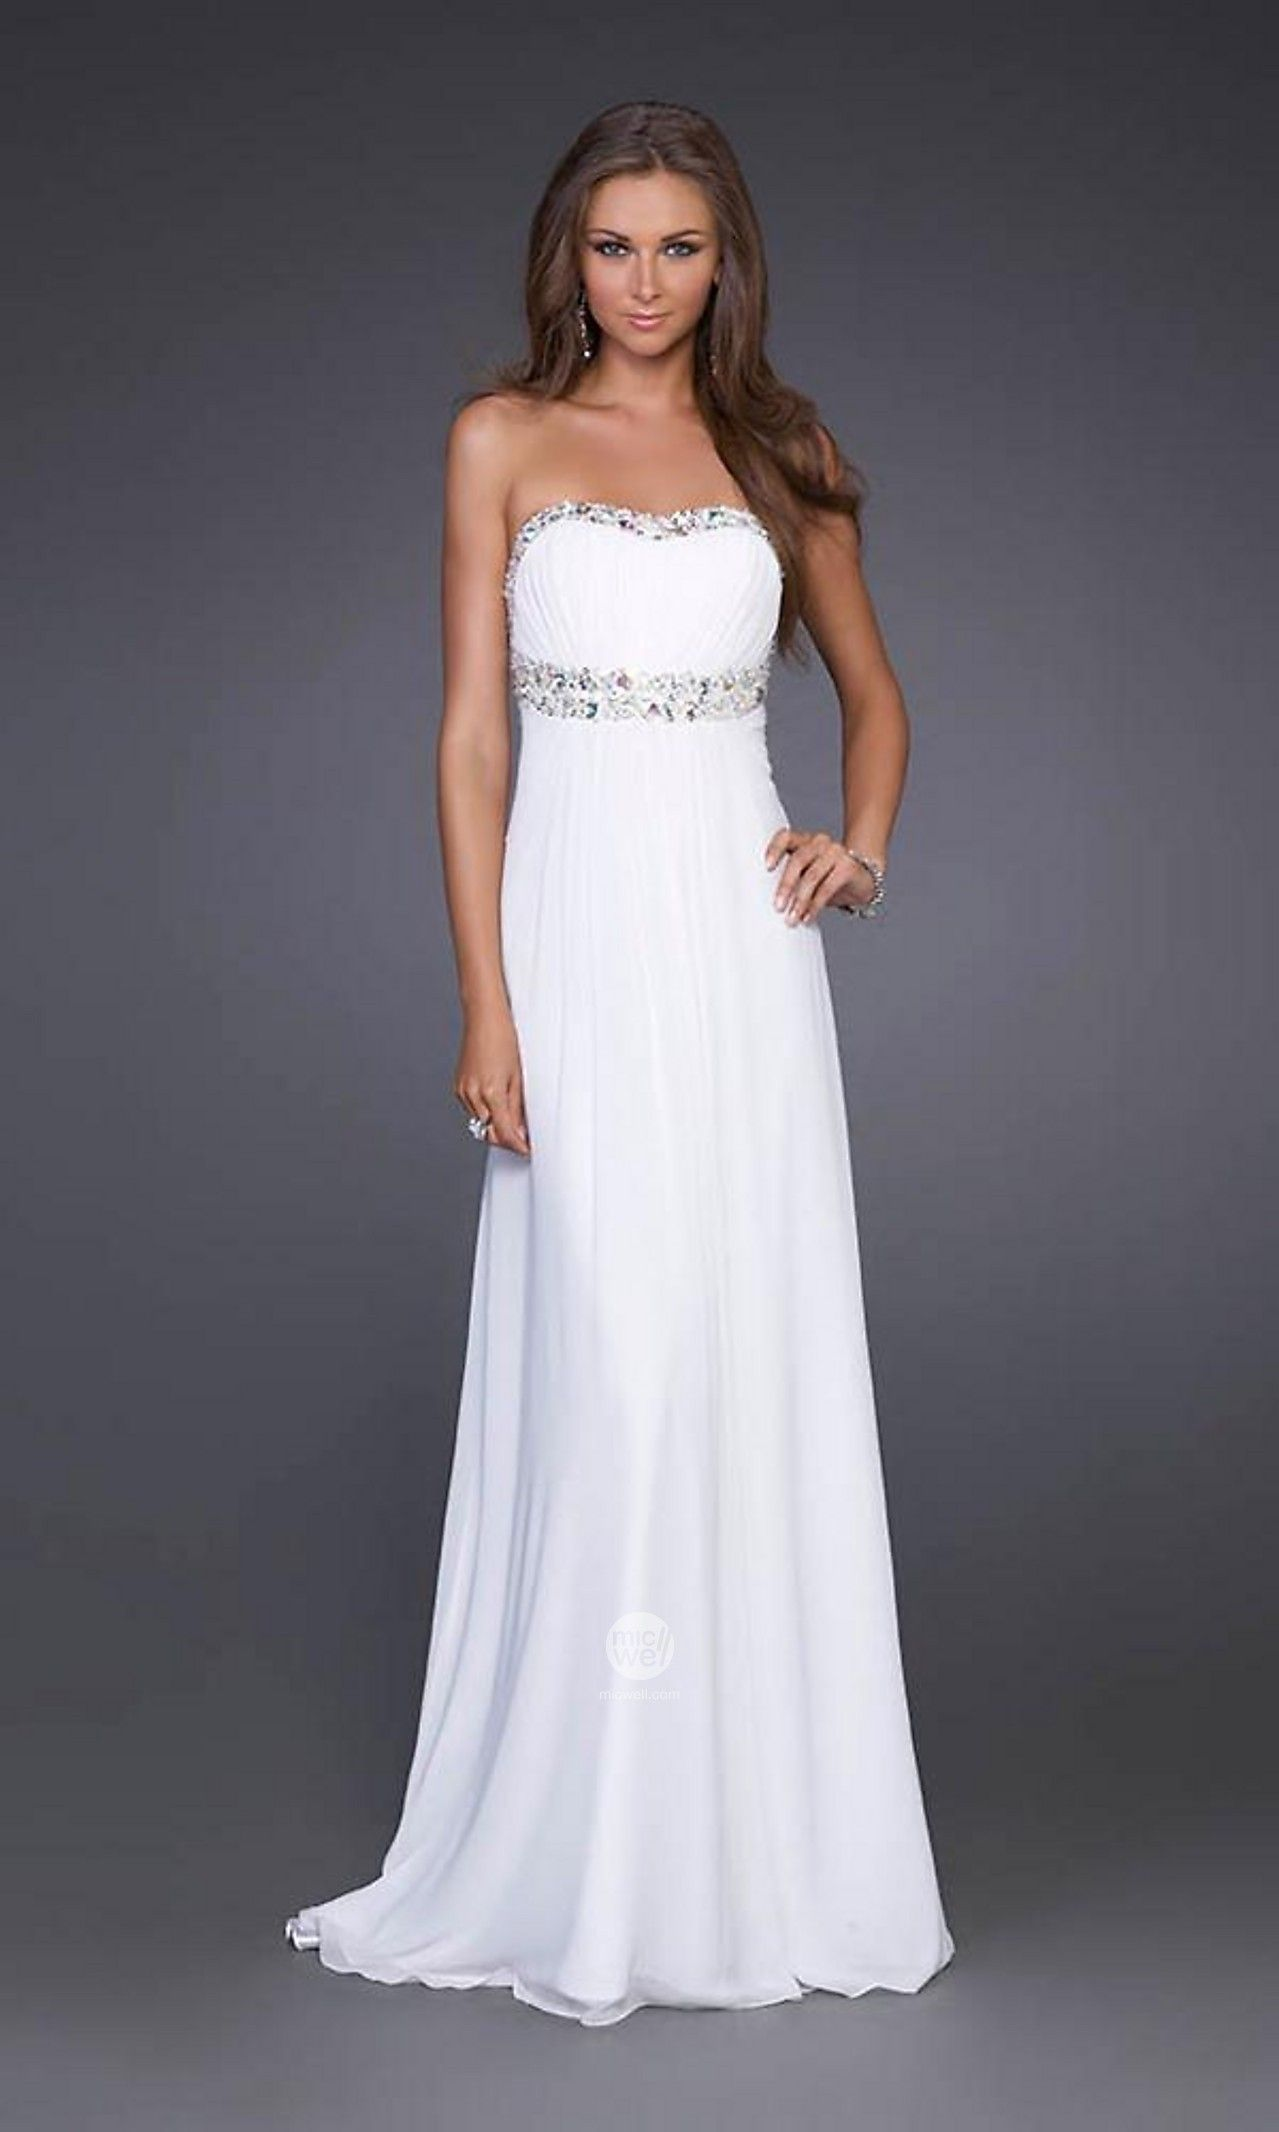 military ball | My Style | Pinterest | Military ball, Military and ...